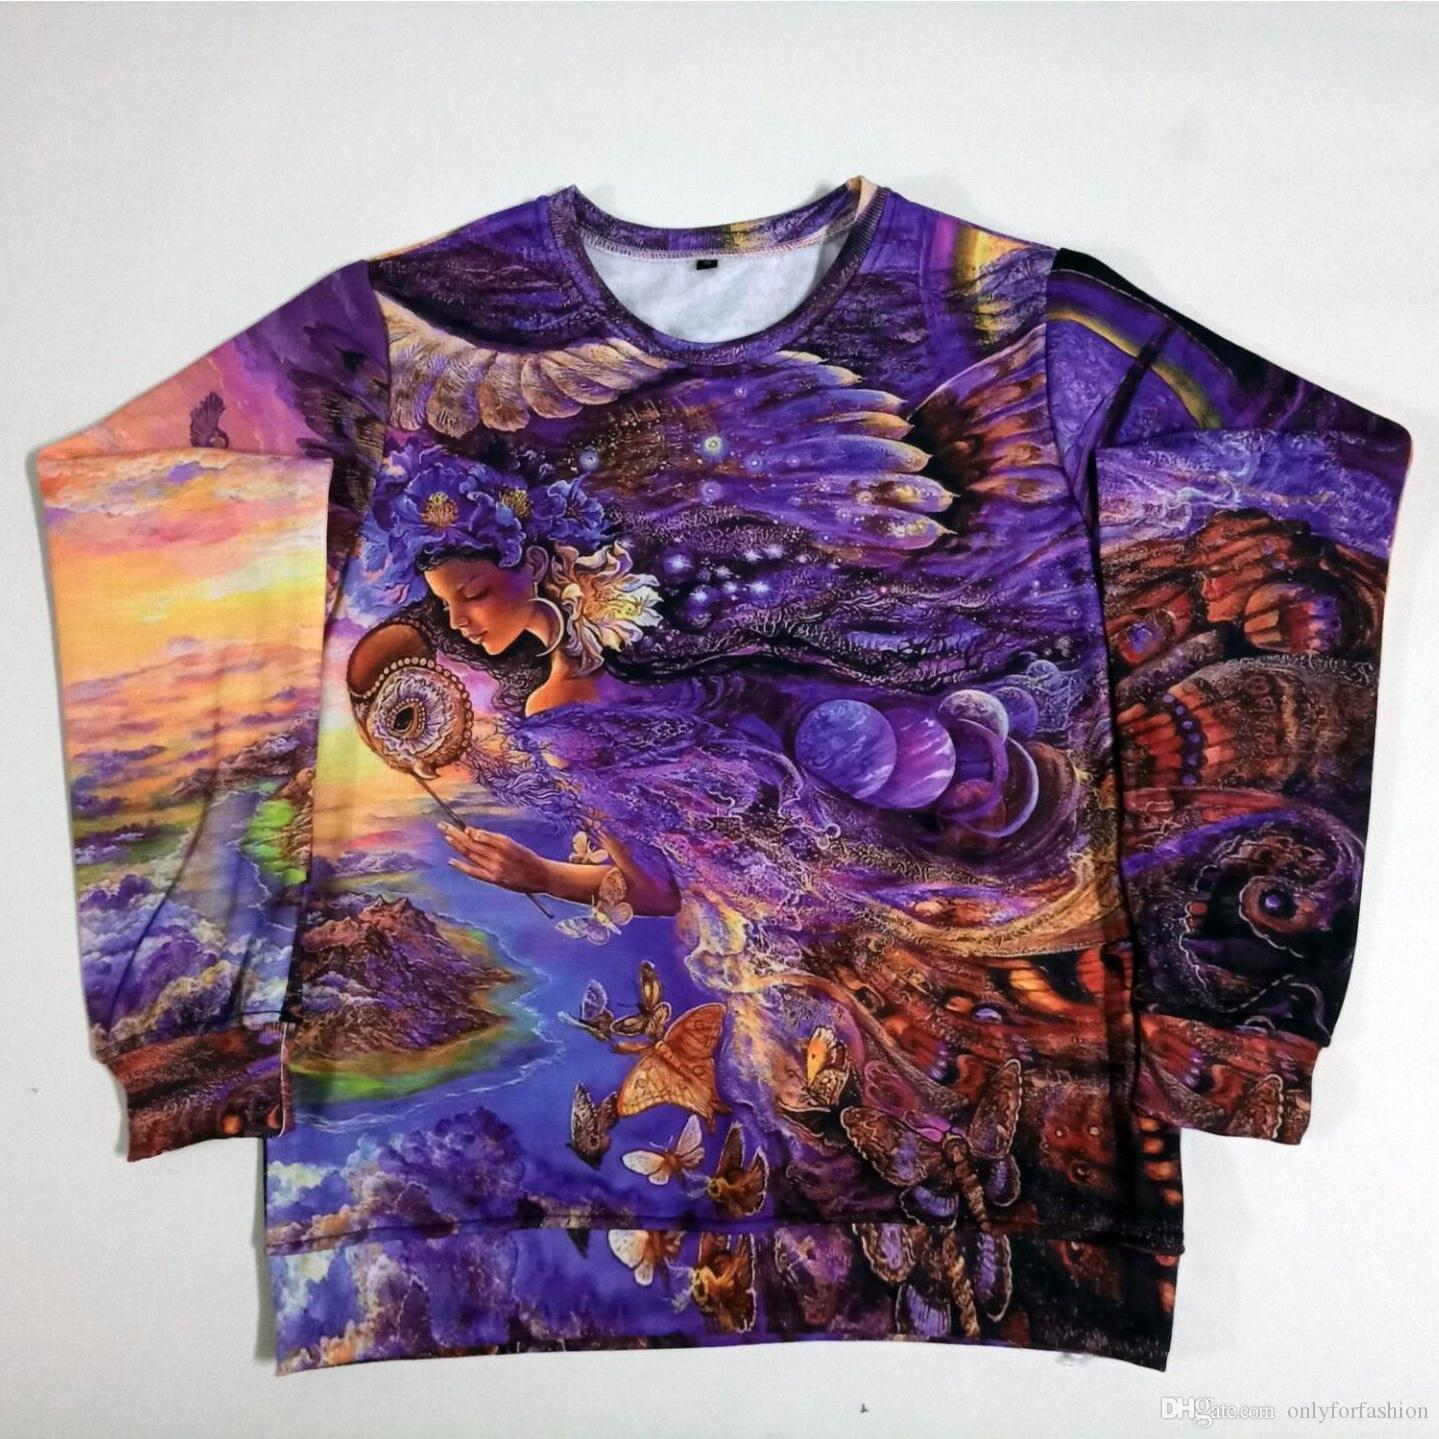 47b8dd51d65 Real USA Size queen of the night 3D sublimation printing Sweatshirt  Crewneck Plus Size 3XL 4XL 5XL 6XL